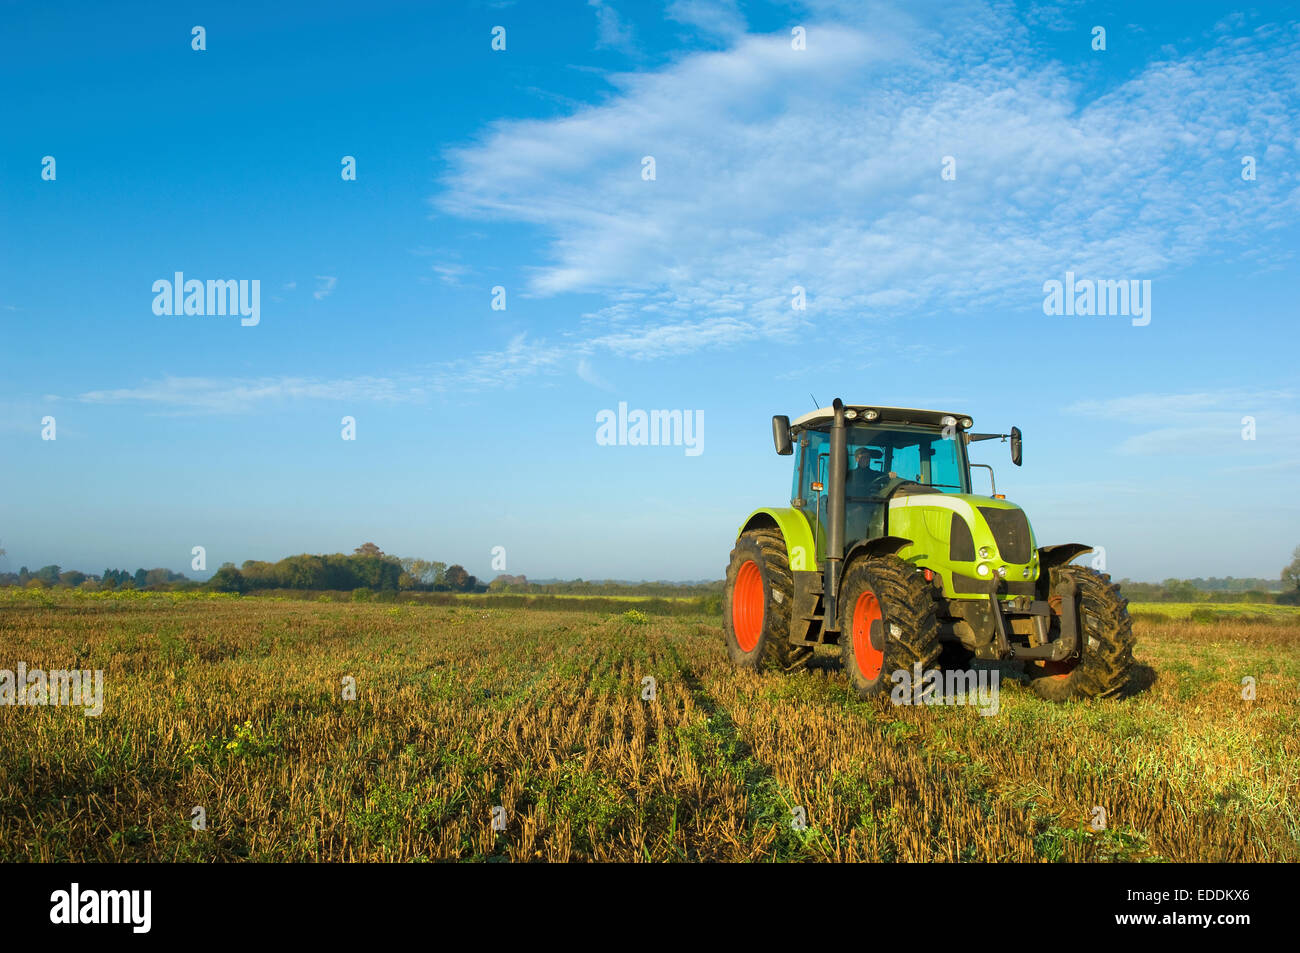 A tractor in a stubble field in Gloucestershire. - Stock Image